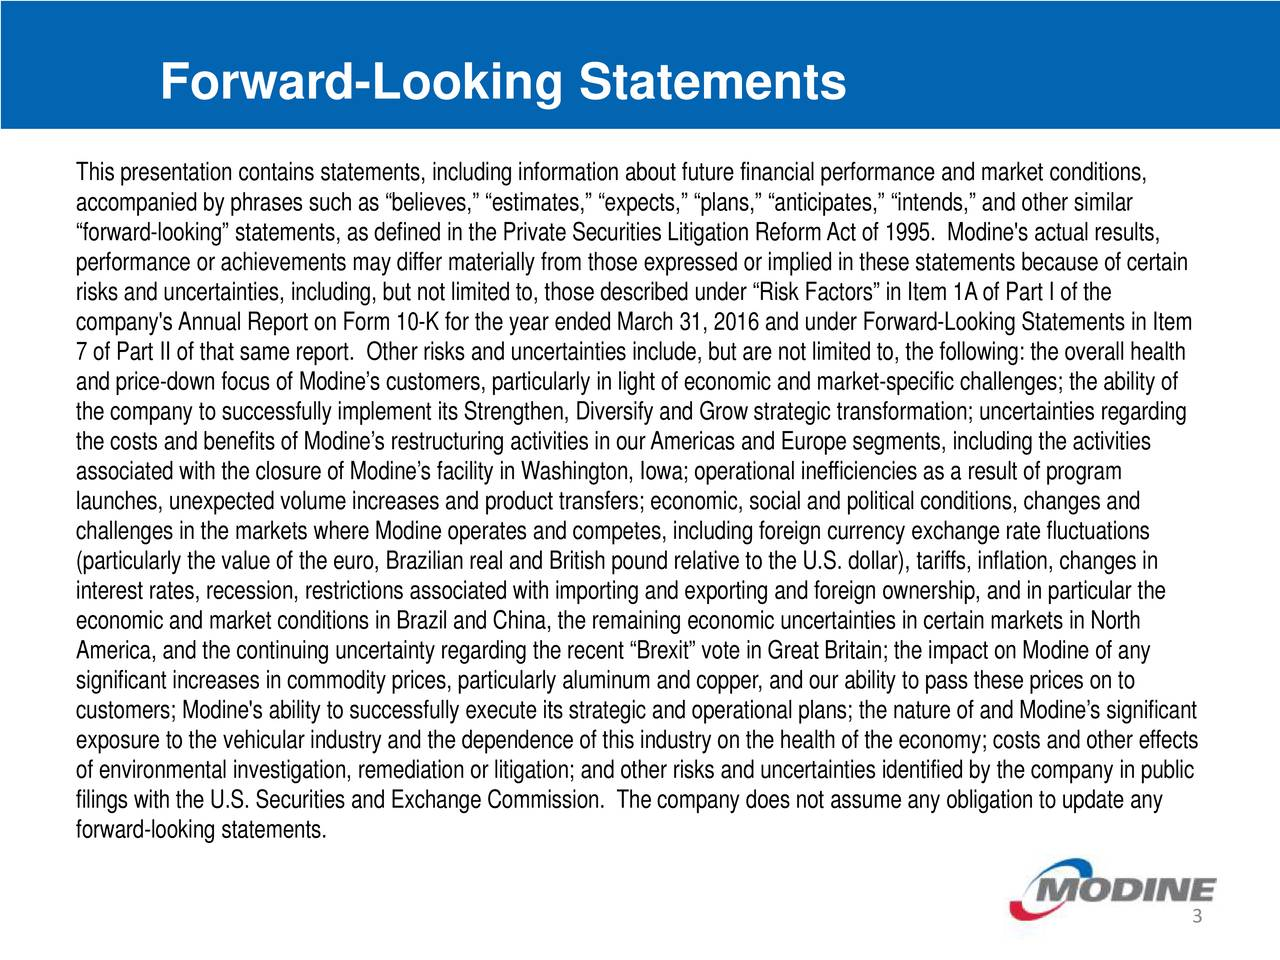 This presentation contains statements, including information about future financial performance and market conditions, accompanied by phrases such as believes, estimates, expects, plans, anticipates, intends, and other similar forward-looking statements, as defined in the Private Securities Litigation ReformAct of 1995. Modine's actual results, performance or achievements may differ materially from those expressed or implied in these statements because of certain risks and uncertainties, including, but not limited to, those described under Risk Factors in Item 1Aof Part I of the company'sAnnual Report on Form 10-K for the year ended March 31, 2016 and under Forward-Looking Statements in Item 7 of Part II of that same report. Other risks and uncertainties include, but are not limited to, the following: the overallhealth and price-down focus of Modines customers, particularly in light of economic and market-specific challenges; the ability of the company to successfully implement its Strengthen, Diversify and Grow strategic transformation; uncertainties regarding the costs and benefits of Modines restructuring activities in ourAmericas and Europe segments, including the activities associated with the closure of Modines facility in Washington, Iowa; operational inefficiencies as a result of program launches, unexpected volume increases and product transfers; economic, social and political conditions, changes and challenges in the markets where Modine operates and competes, including foreign currency exchange rate fluctuations (particularly the value of the euro, Brazilian real and British pound relative to the U.S. dollar), tariffs, inflation, changesin interest rates, recession, restrictions associated with importing and exporting and foreign ownership, and in particular the economic and market conditions in Brazil and China, the remaining economic uncertainties in certain markets in North America, and the continuing uncertainty regarding the recent Brexit vote in Gre